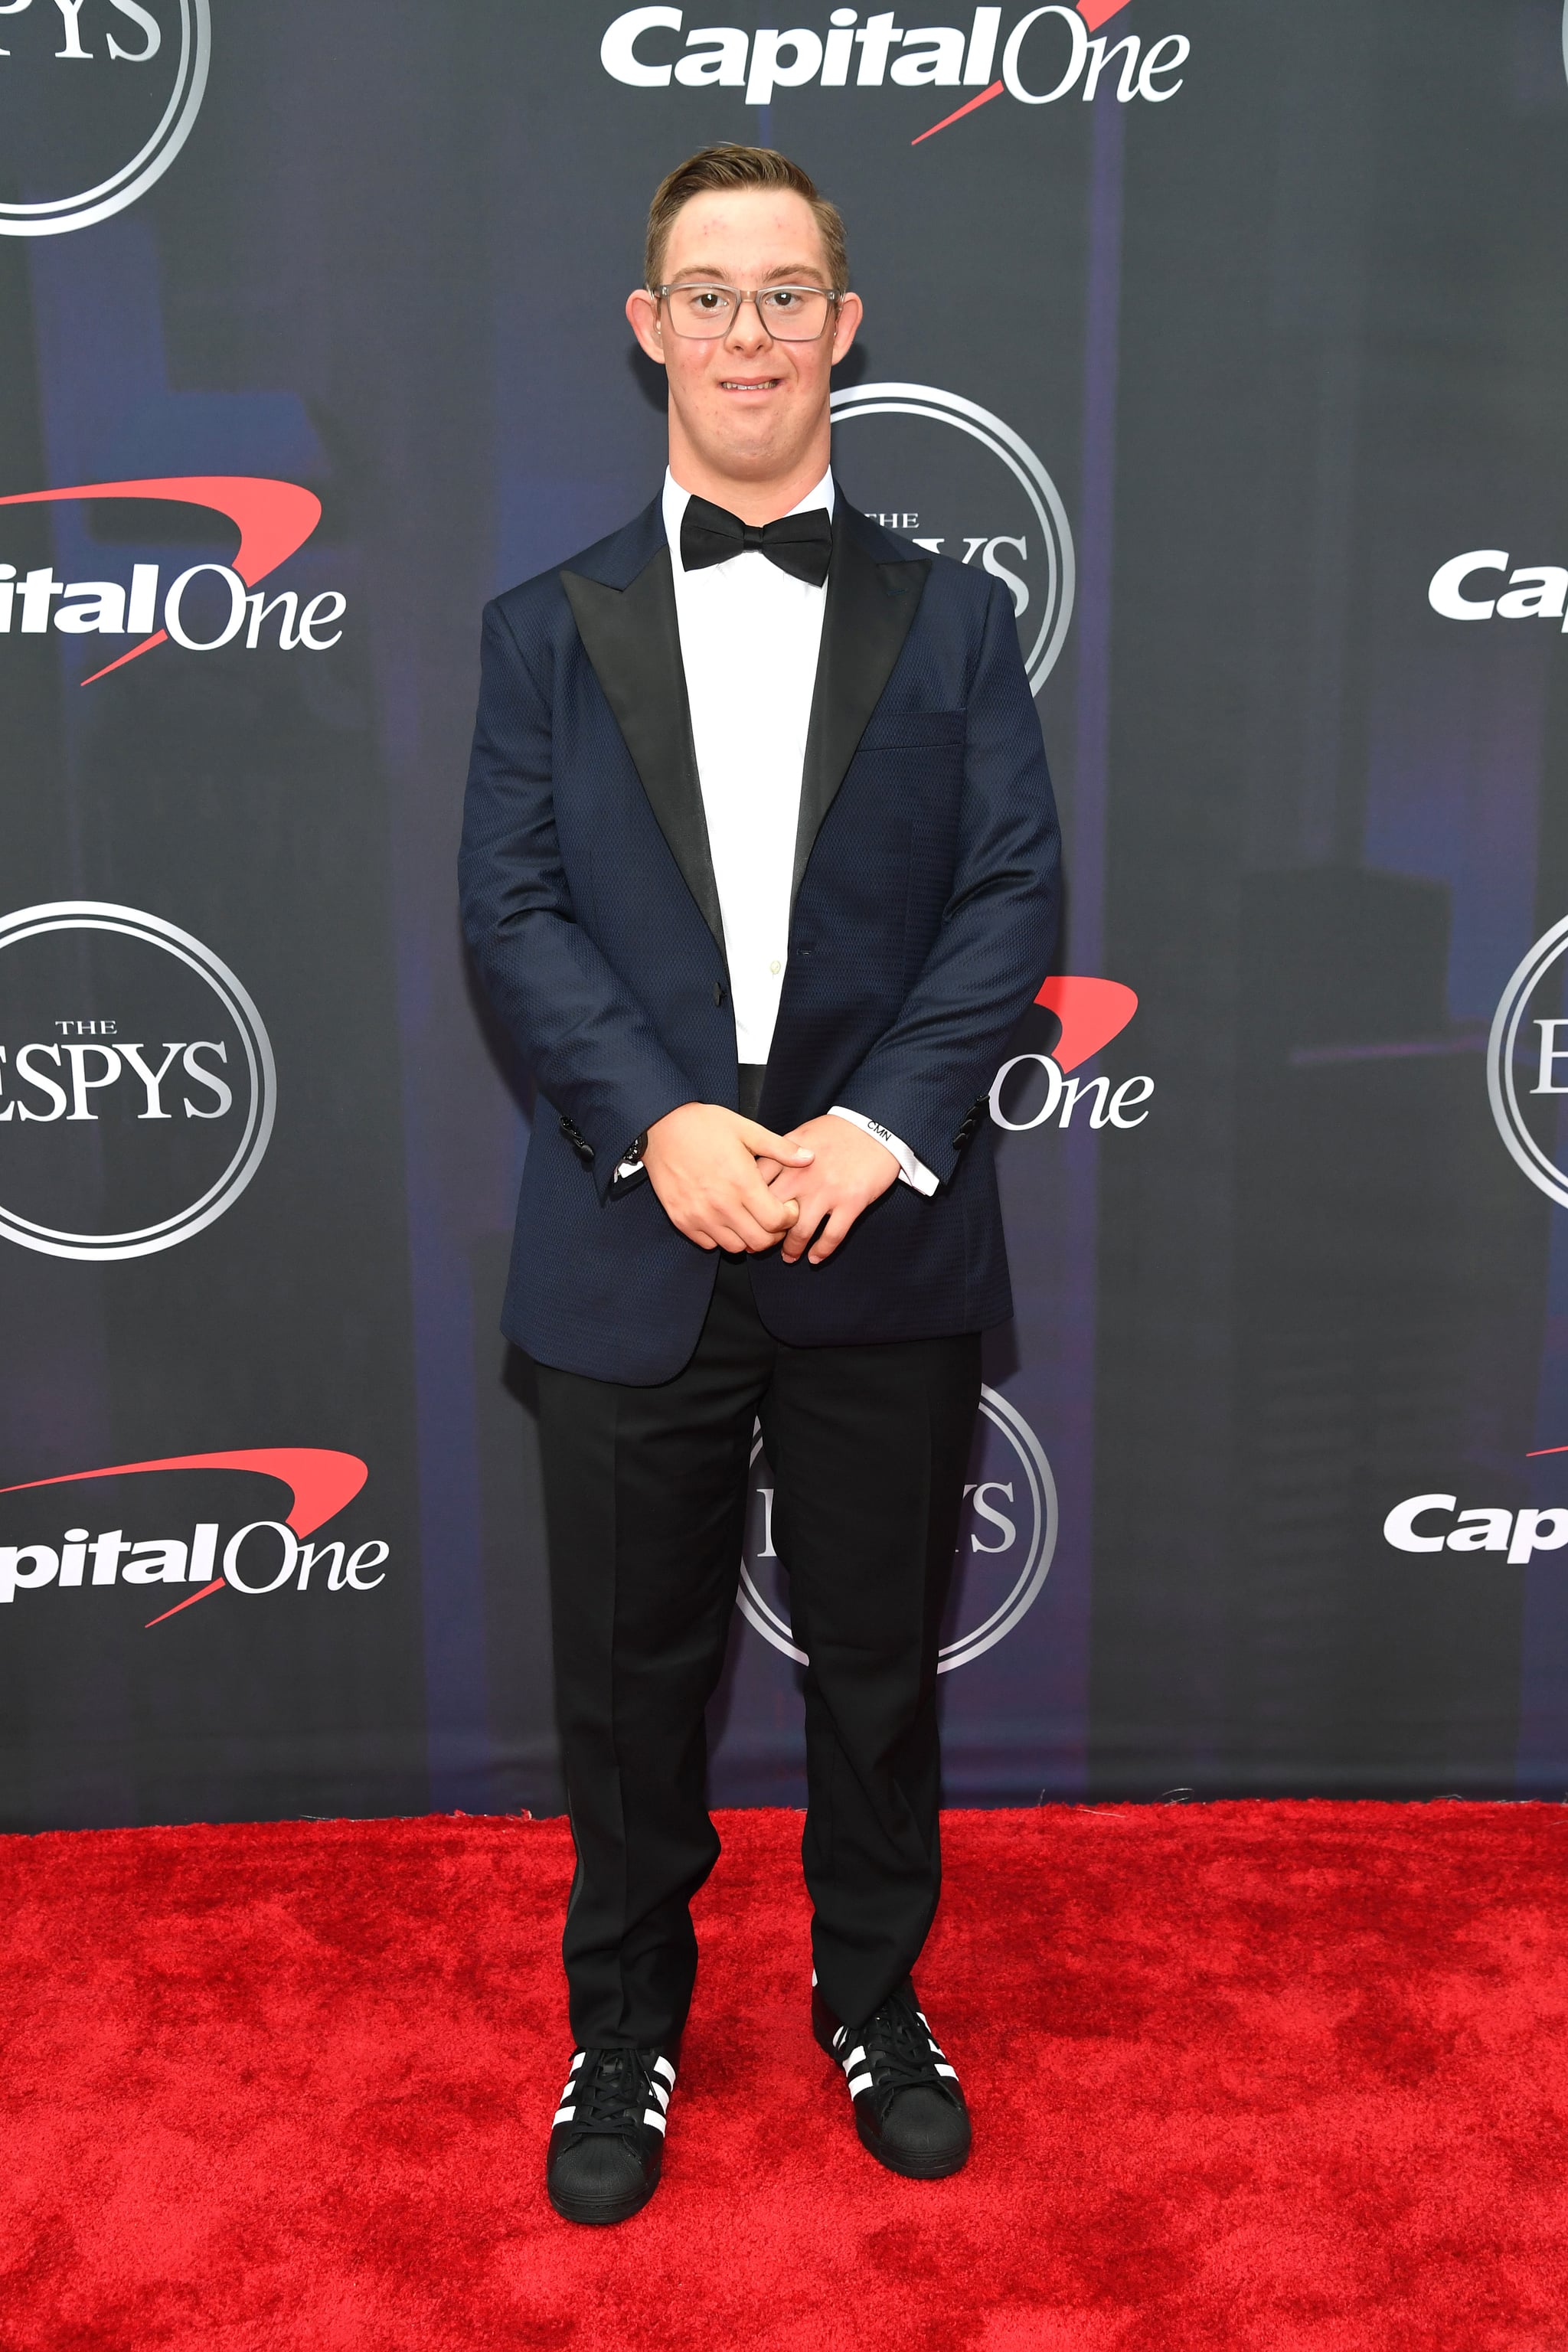 NEW YORK, NEW YORK - JULY 10:  Chris Nikic attends the 2021 ESPY Awards at Rooftop At Pier 17 on July 10, 2021 in New York City.  (Photo by Kevin Mazur/Getty Images)